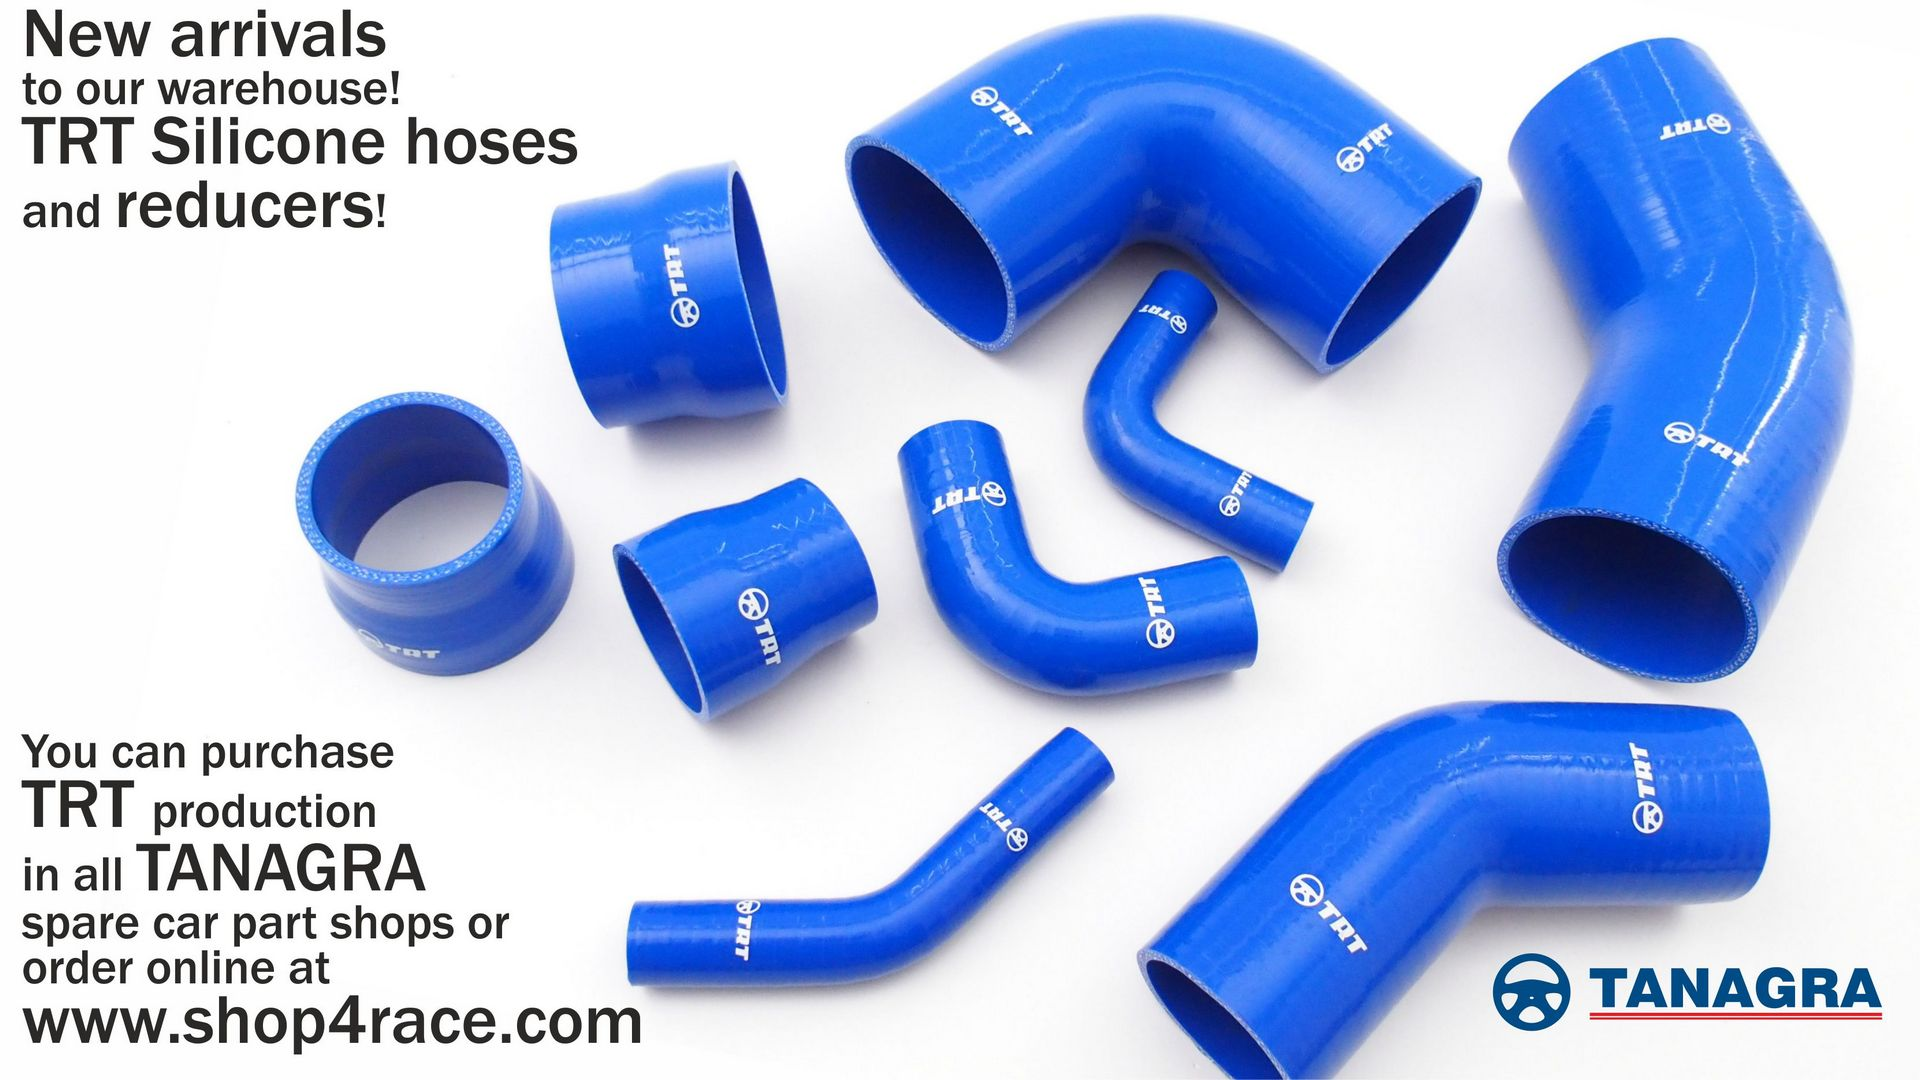 TRT Silicone hoses, and reducers!